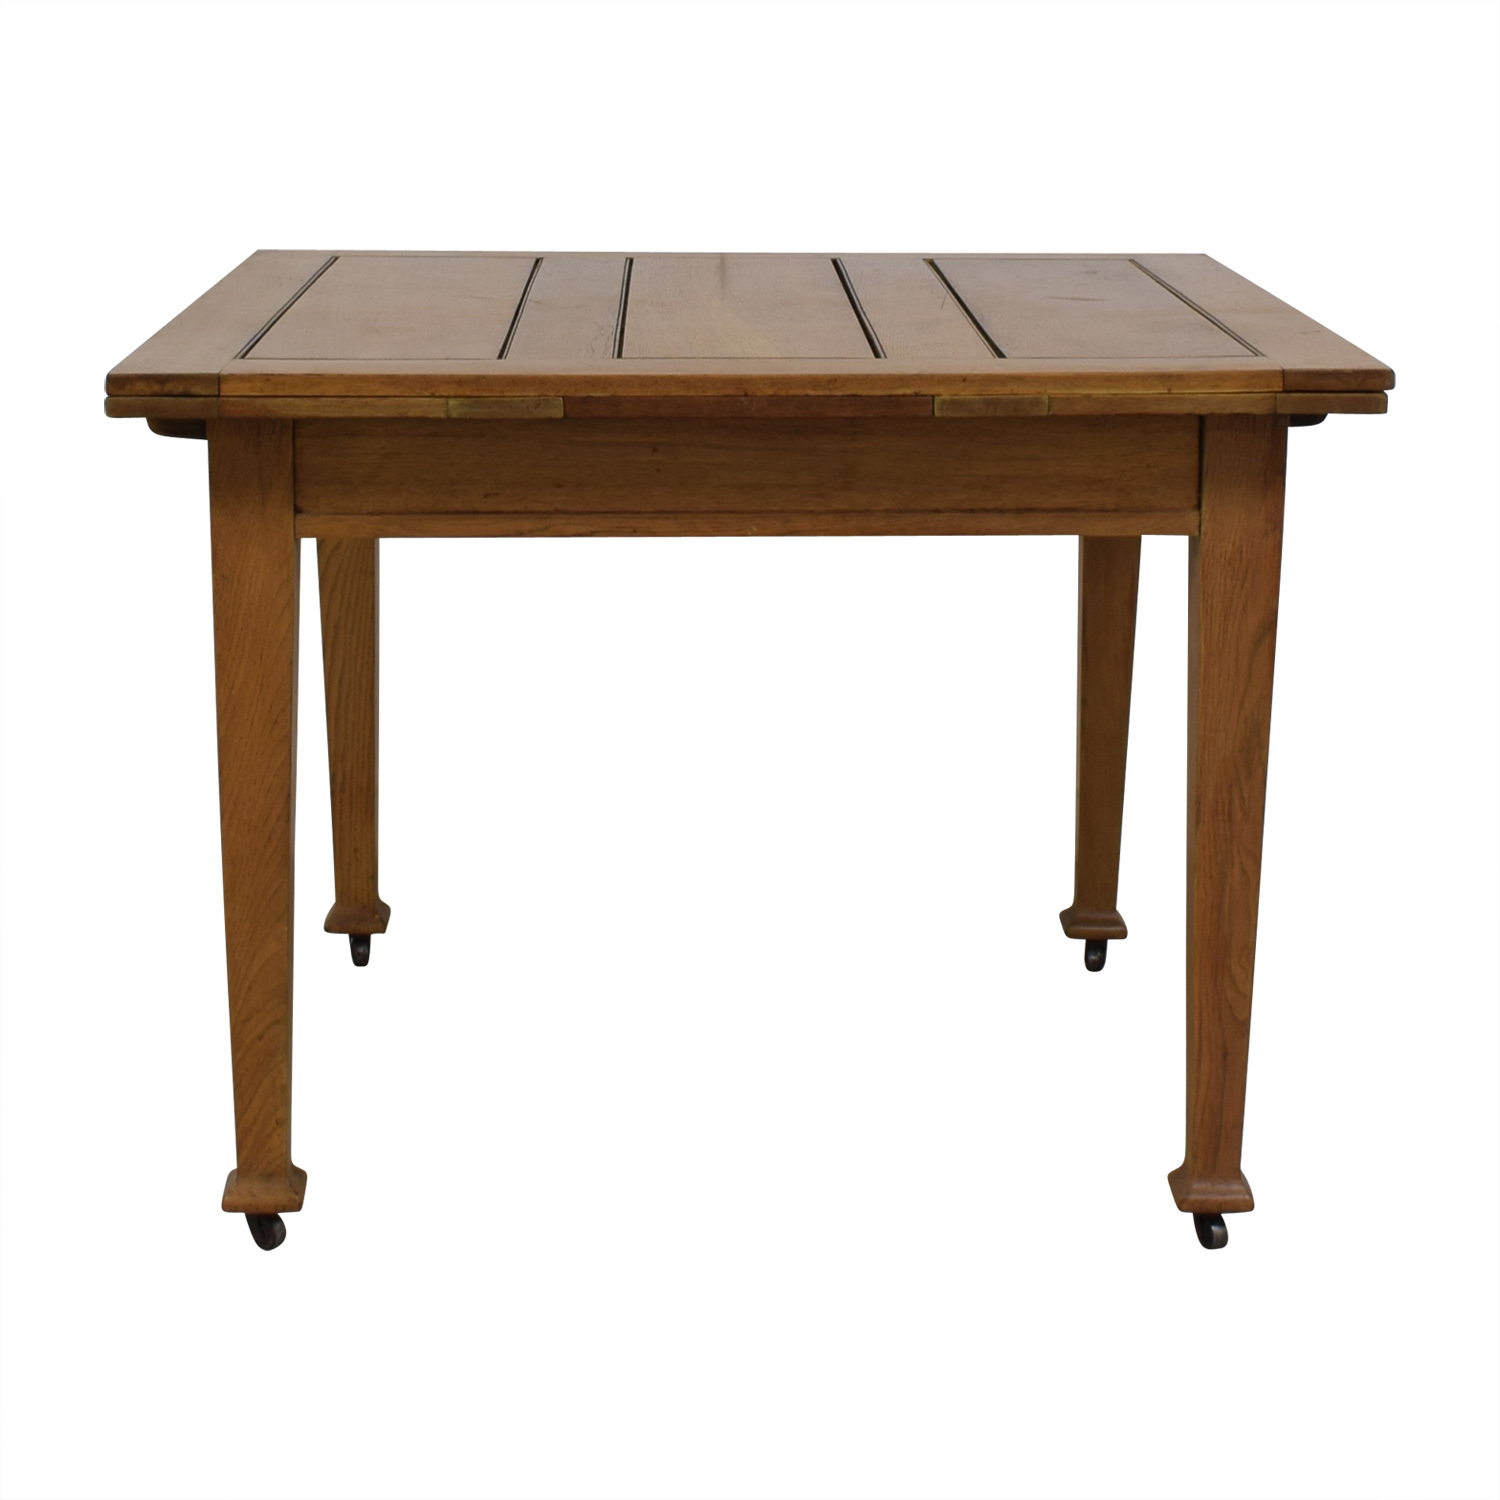 Custom Antique Oak Dining Table with Pull Out Leaves dimensions